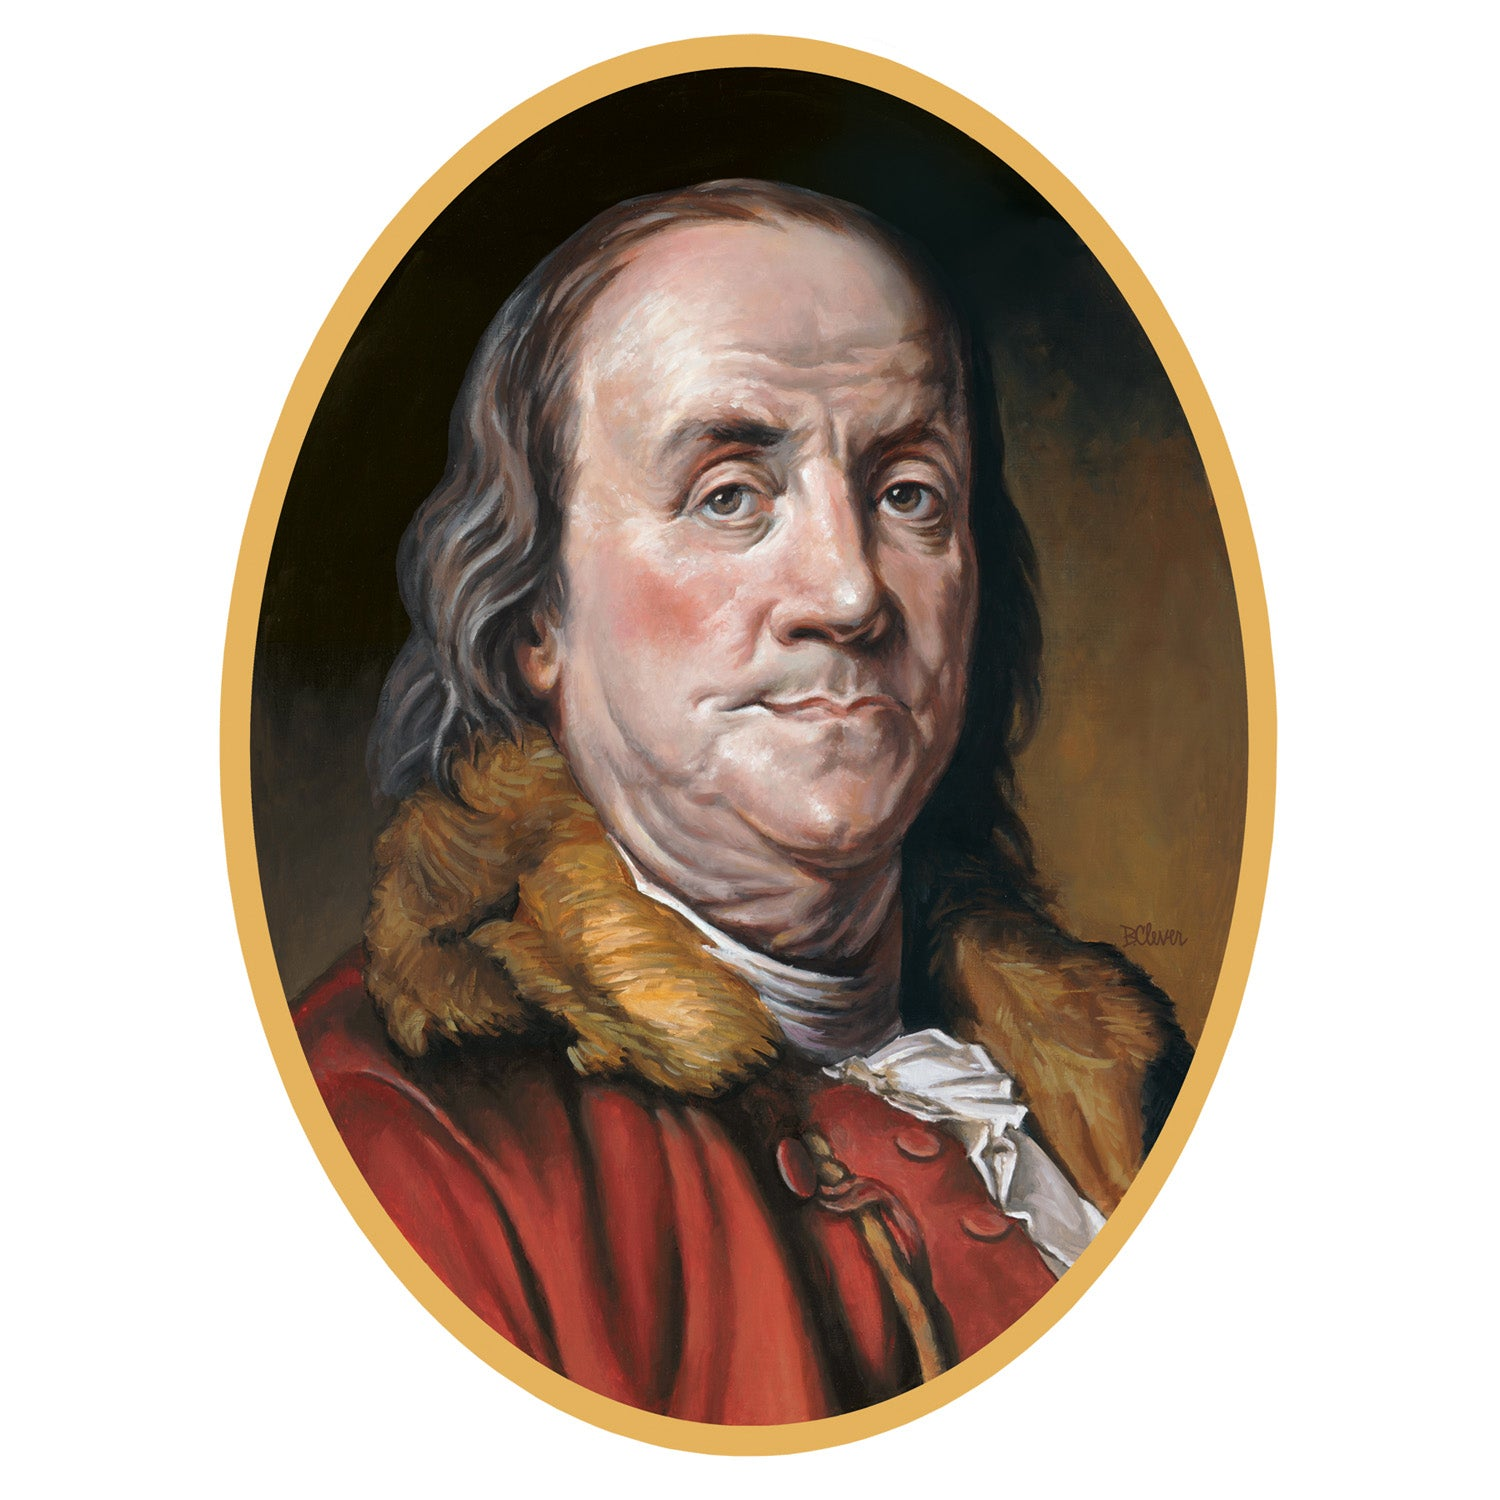 Ben Franklin Cutout by Beistle - School Awards and Supplies Decorations